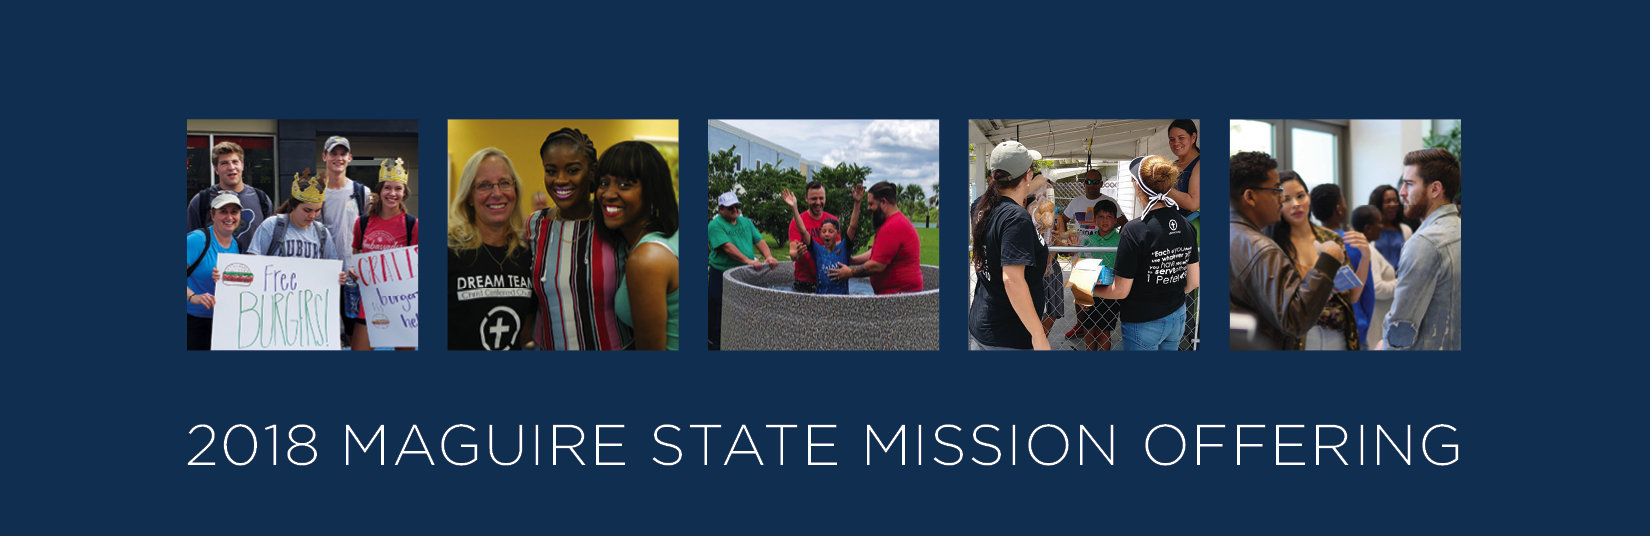 Florida Baptist Convention, Maguire State Mission Offering